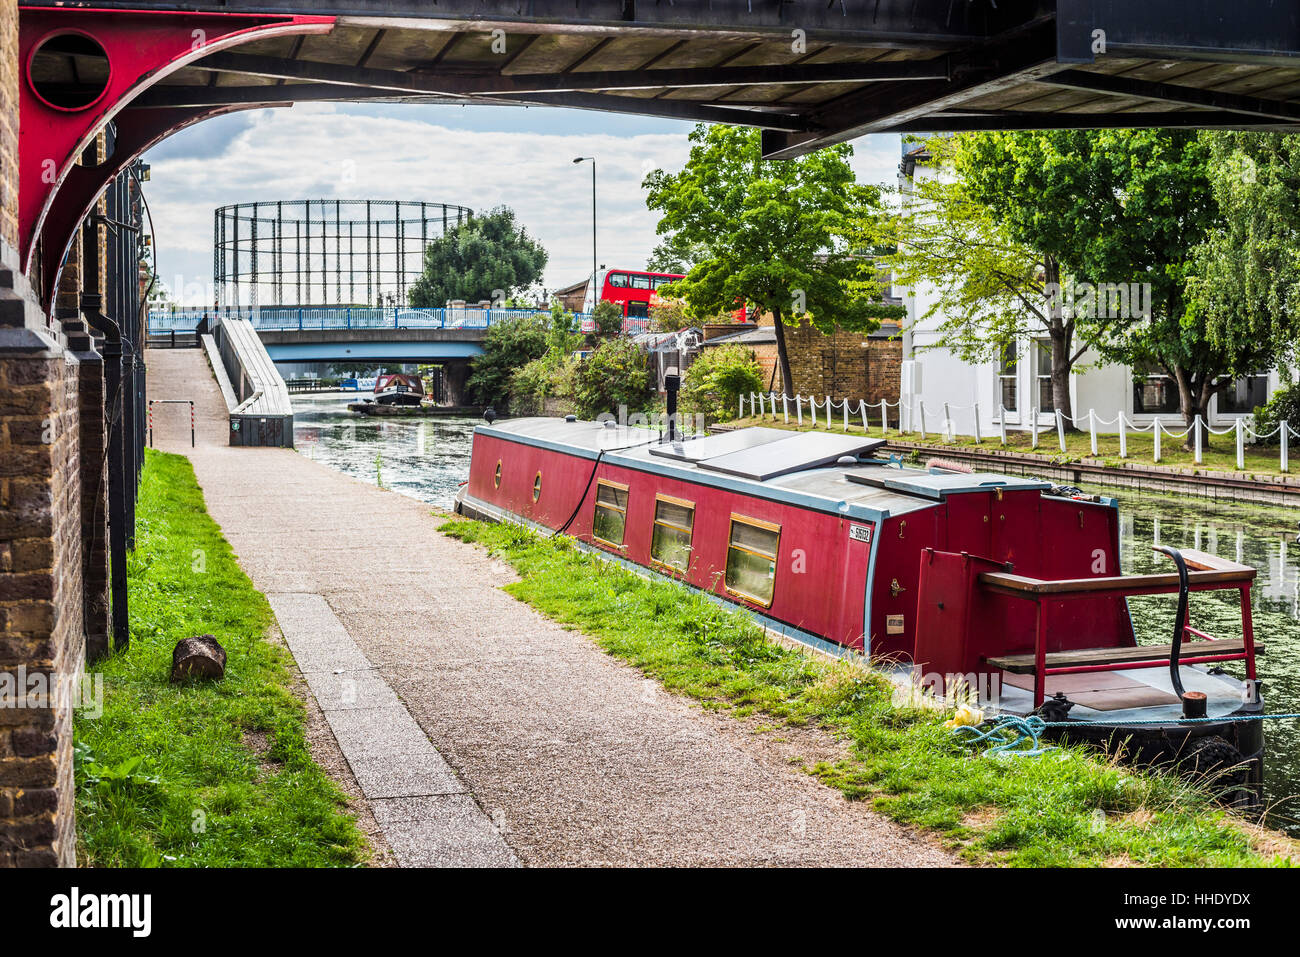 Canal at Ladbroke Grove in the Royal Borough of Kensington and Chelsea, London, UK - Stock Image